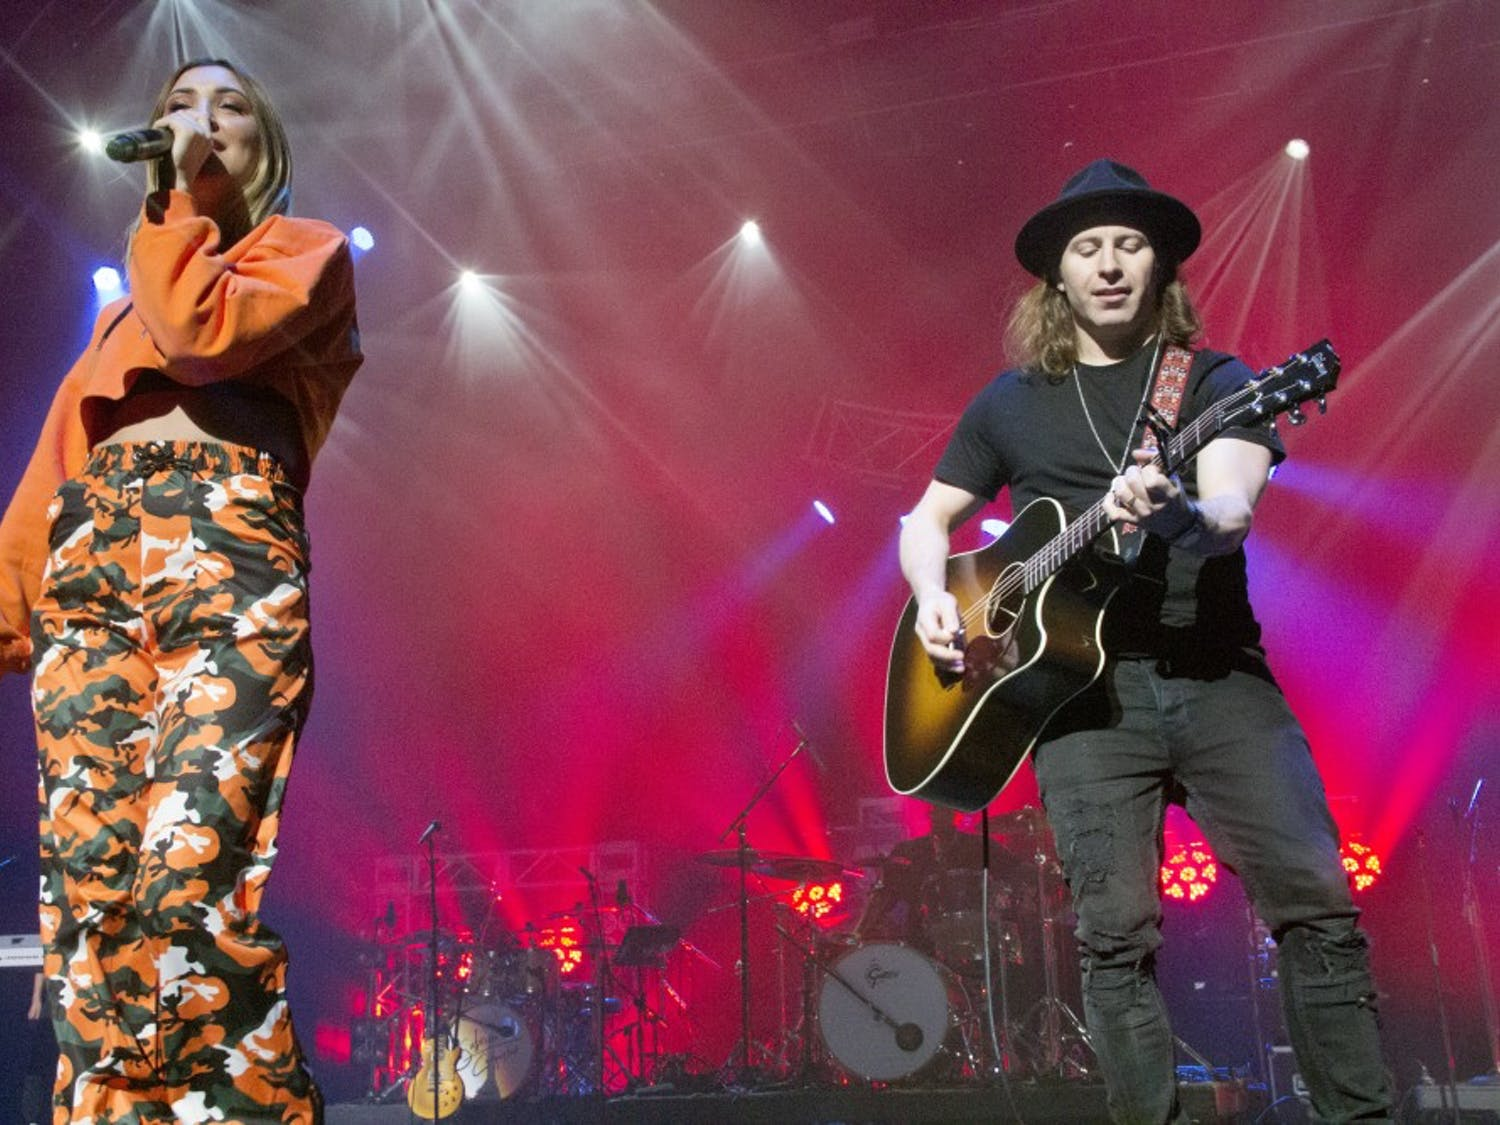 Songwriter-turned-superstar Julia Michaels kept the crowd inspired at KeyBank Center Saturday night. Michaels, Kesha, and other pop artists put on an exciting and diverse show during Kiss 98.5's annual Kissmas Bash concert.